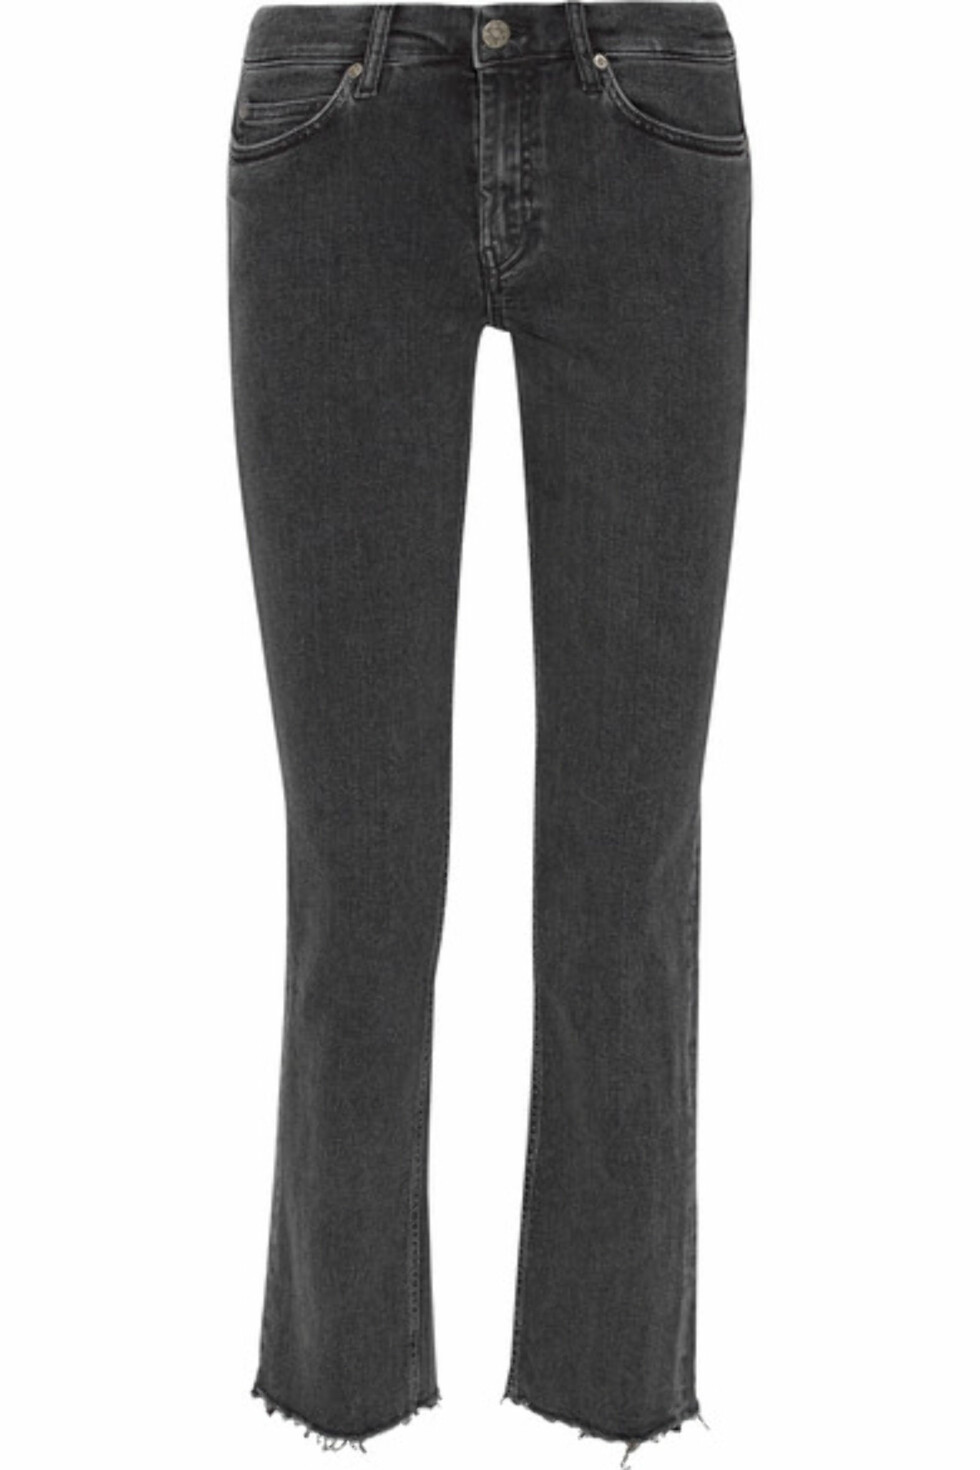 Jeans fra M.I.H Jeans via Net-a-porter.com | kr 2648 | https://www.net-a-porter.com/no/en/product/786239/m_i_h_jeans/daily-cropped-high-rise-straight-leg-jeans